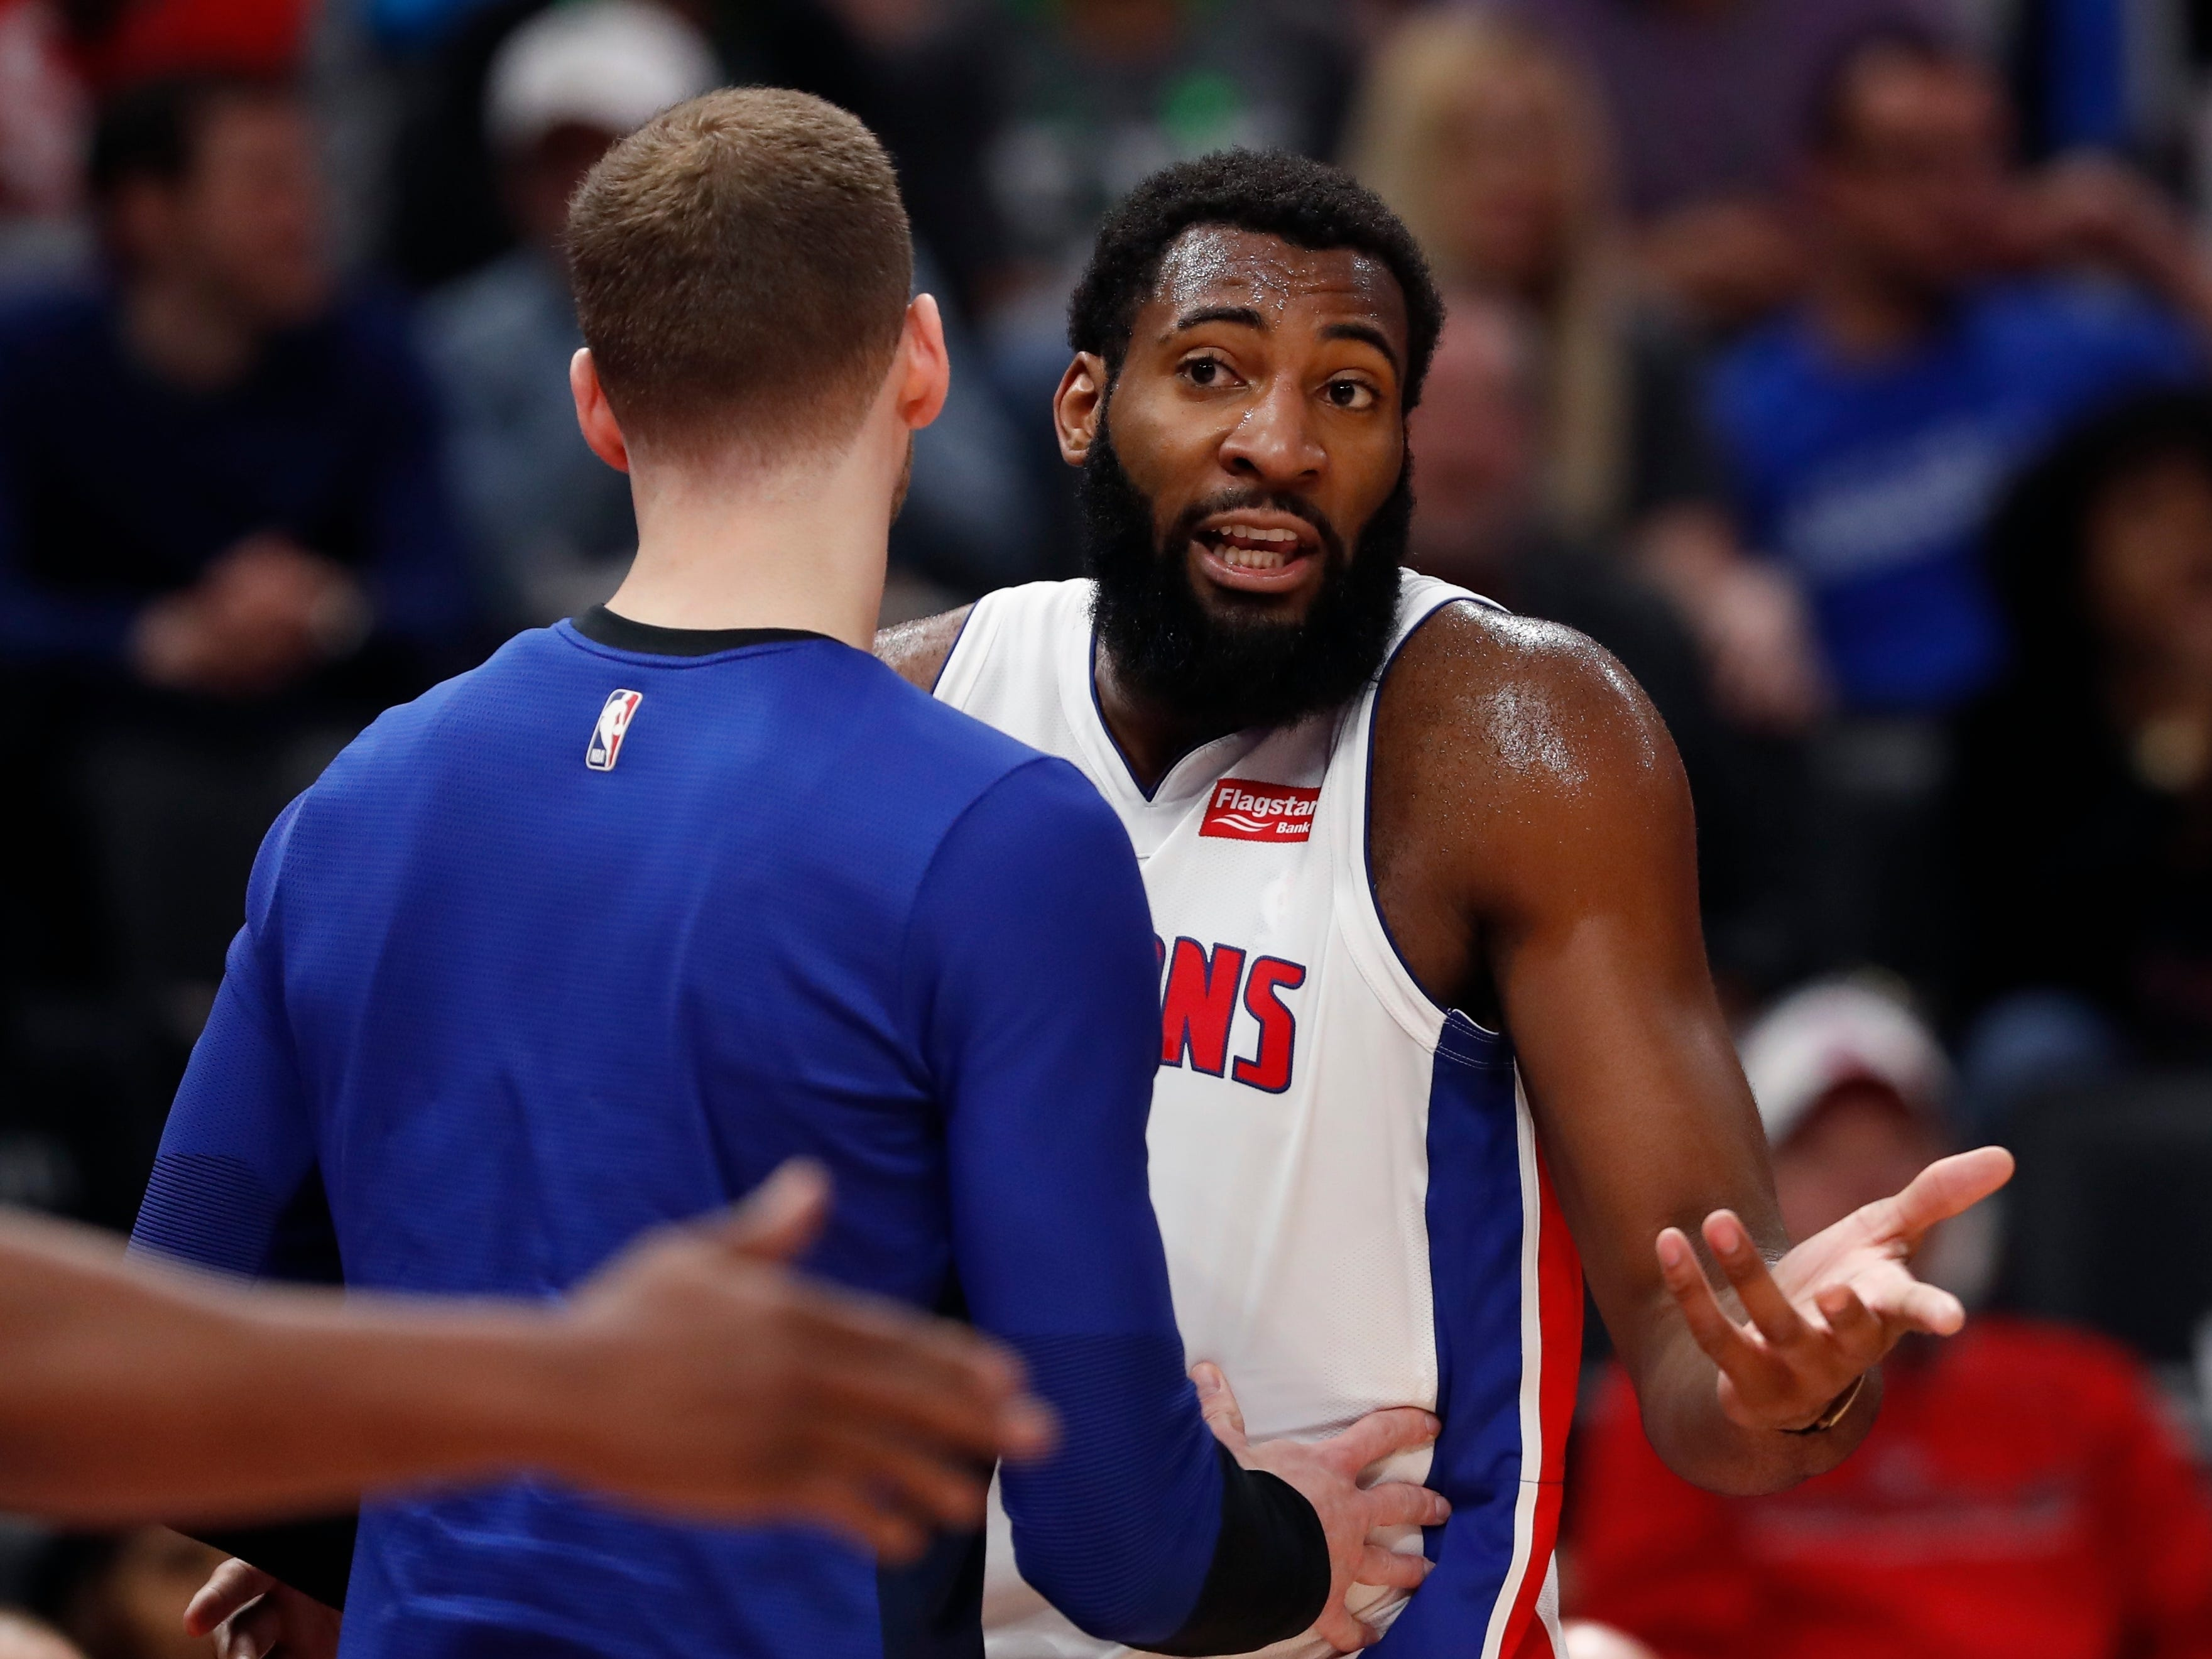 Detroit Pistons center Andre Drummond, right, looks toward the referee after a call during the first half against the Toronto Raptors, Sunday, March 17, 2019, in Detroit.